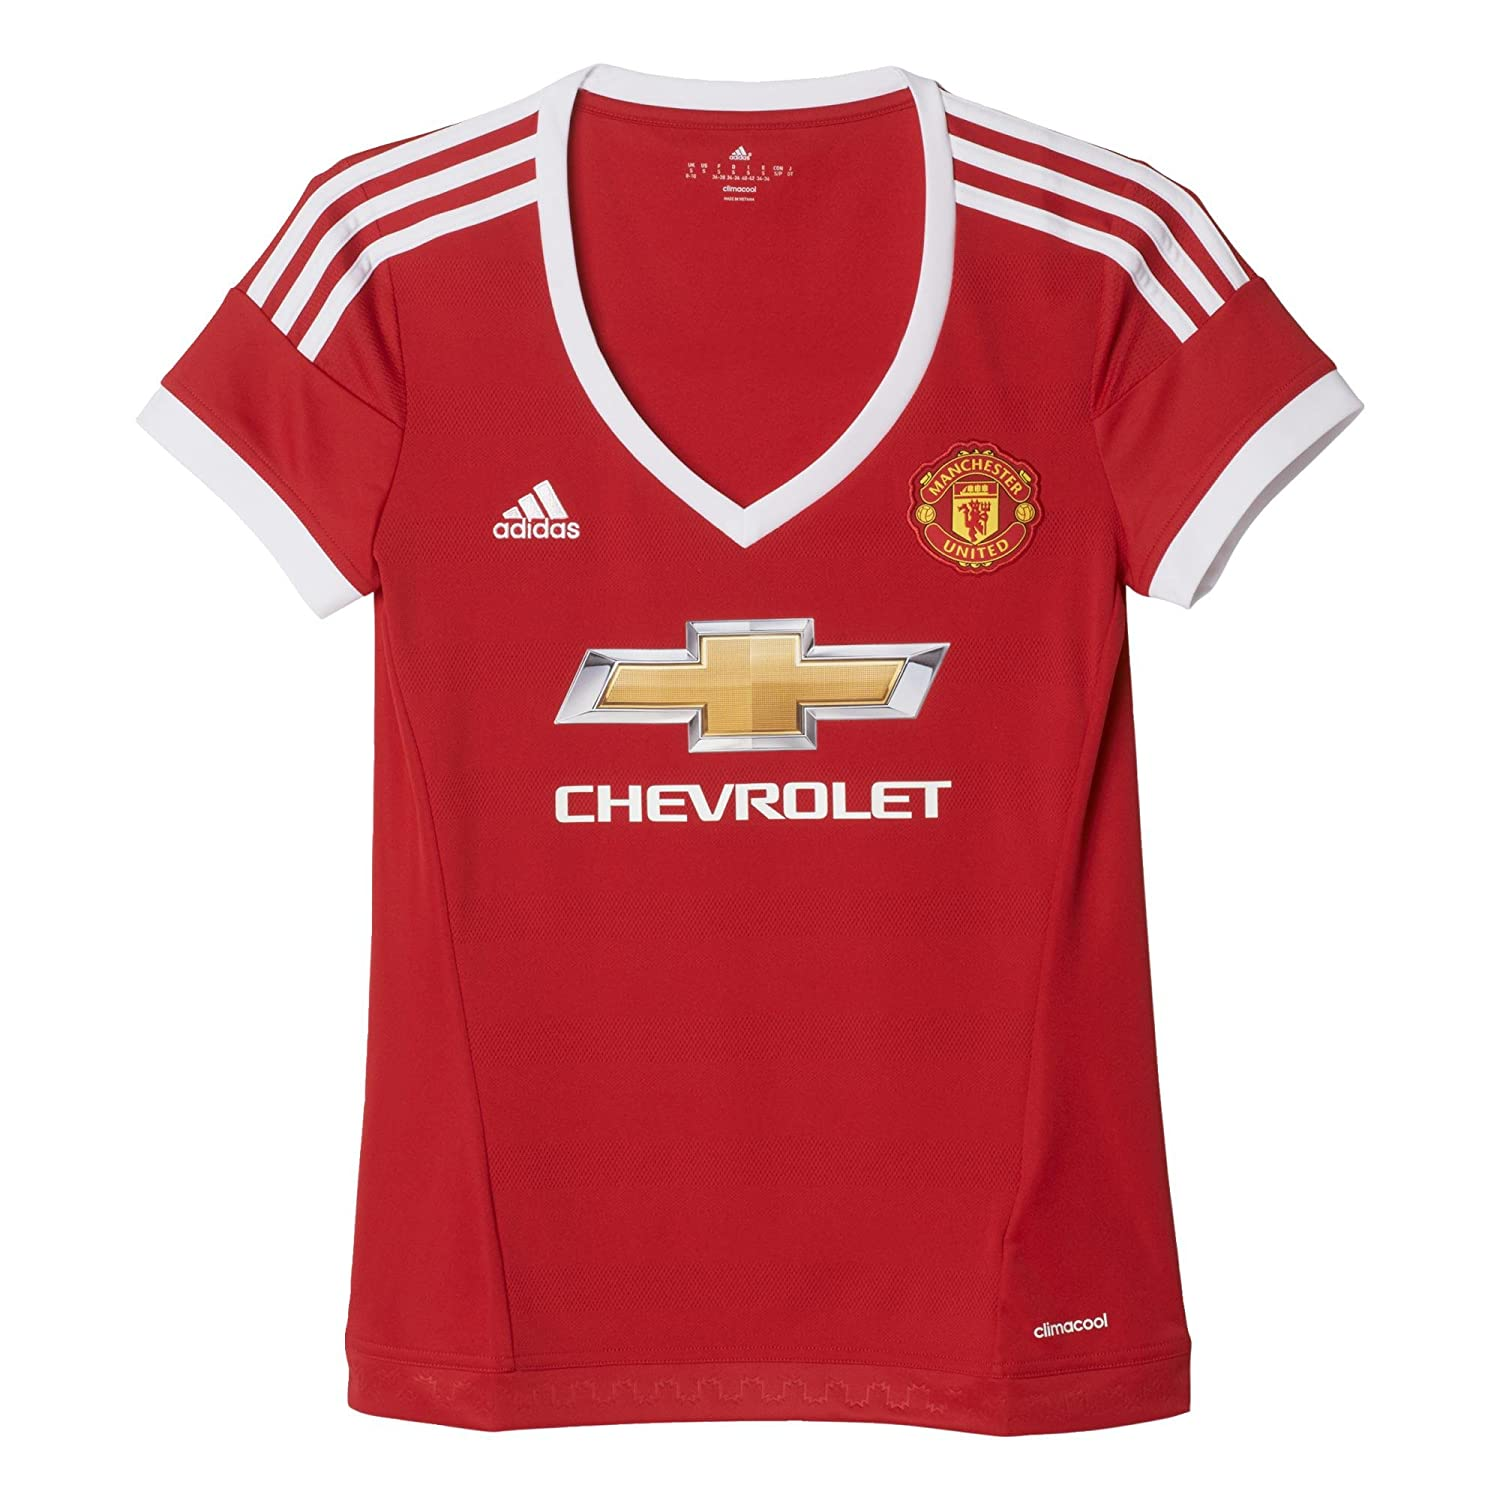 size 40 79710 2f846 adidas Women's Short-Sleeved Manchester United Replica Home Shirt